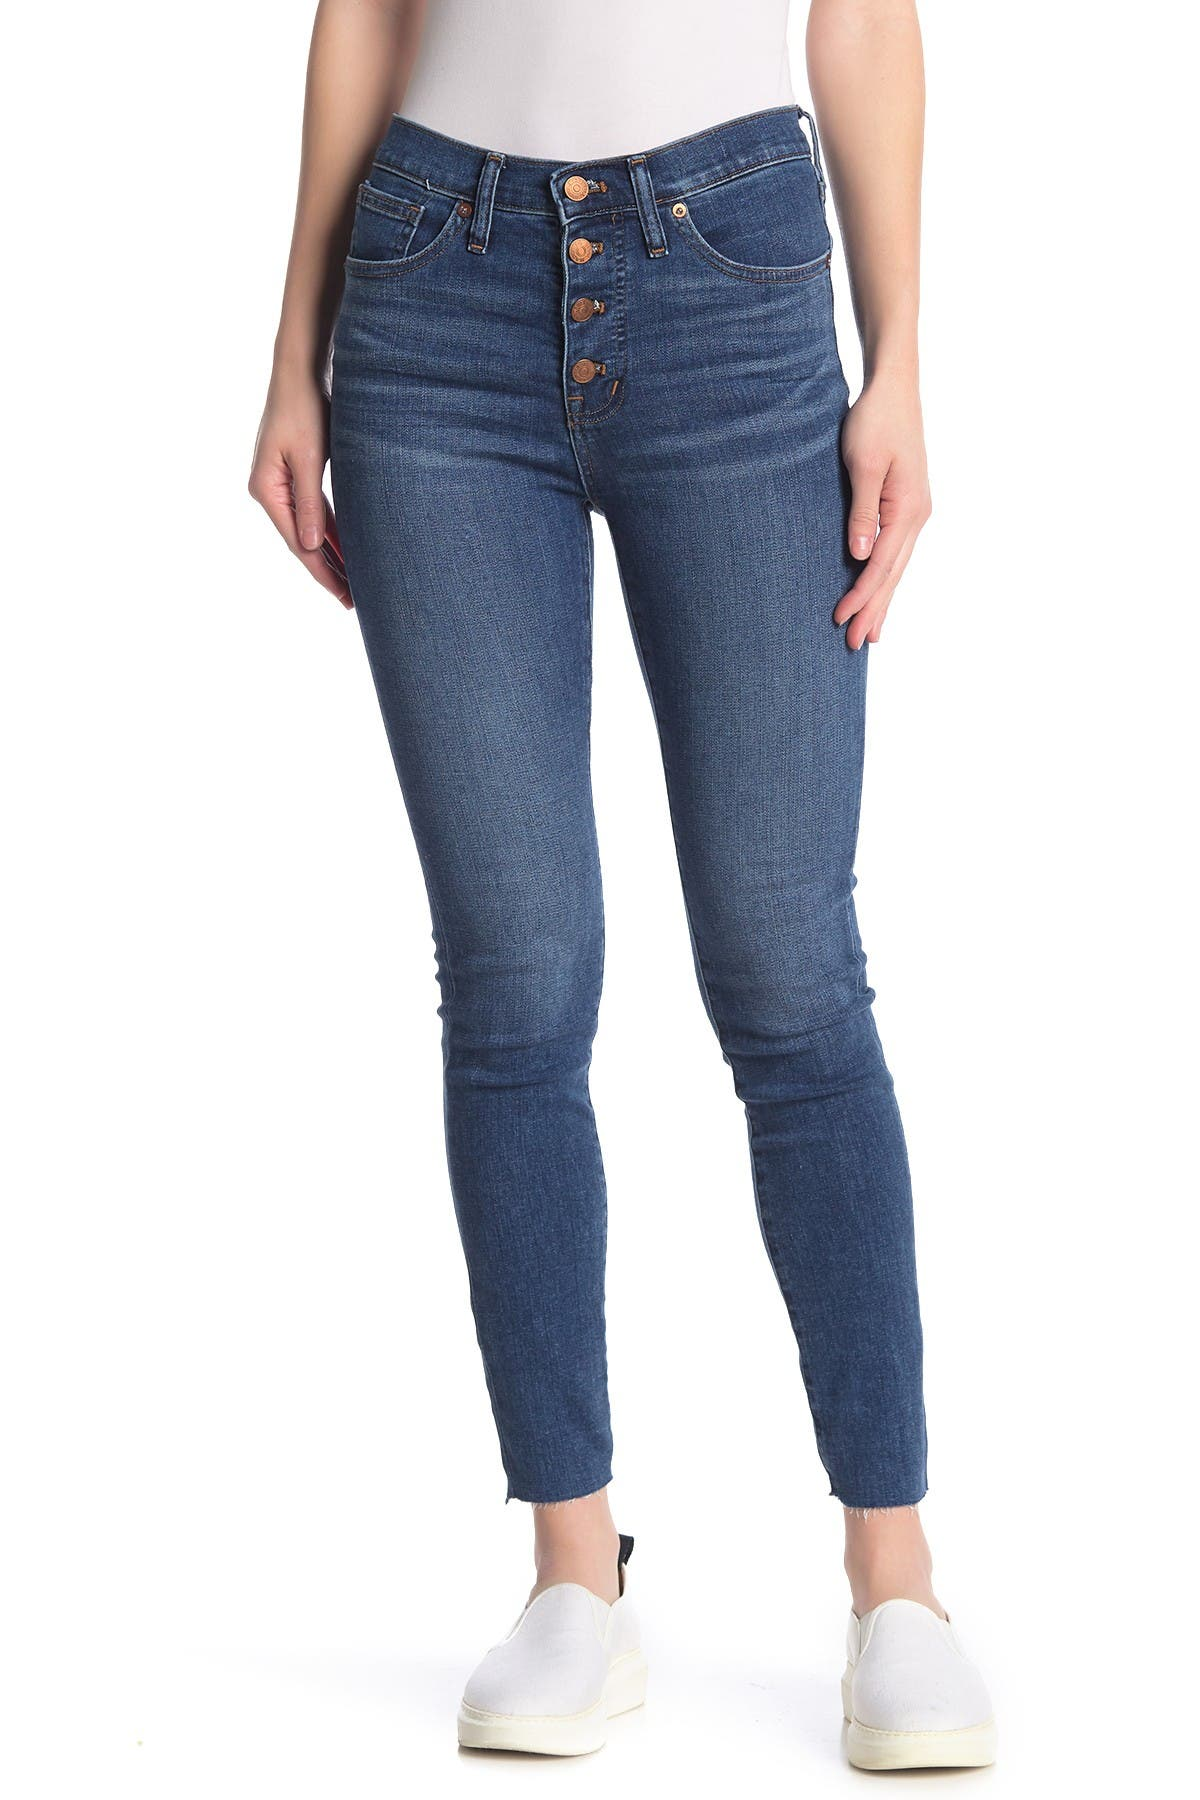 Image of Madewell Button Fly Mid Rise Skinny Jeans